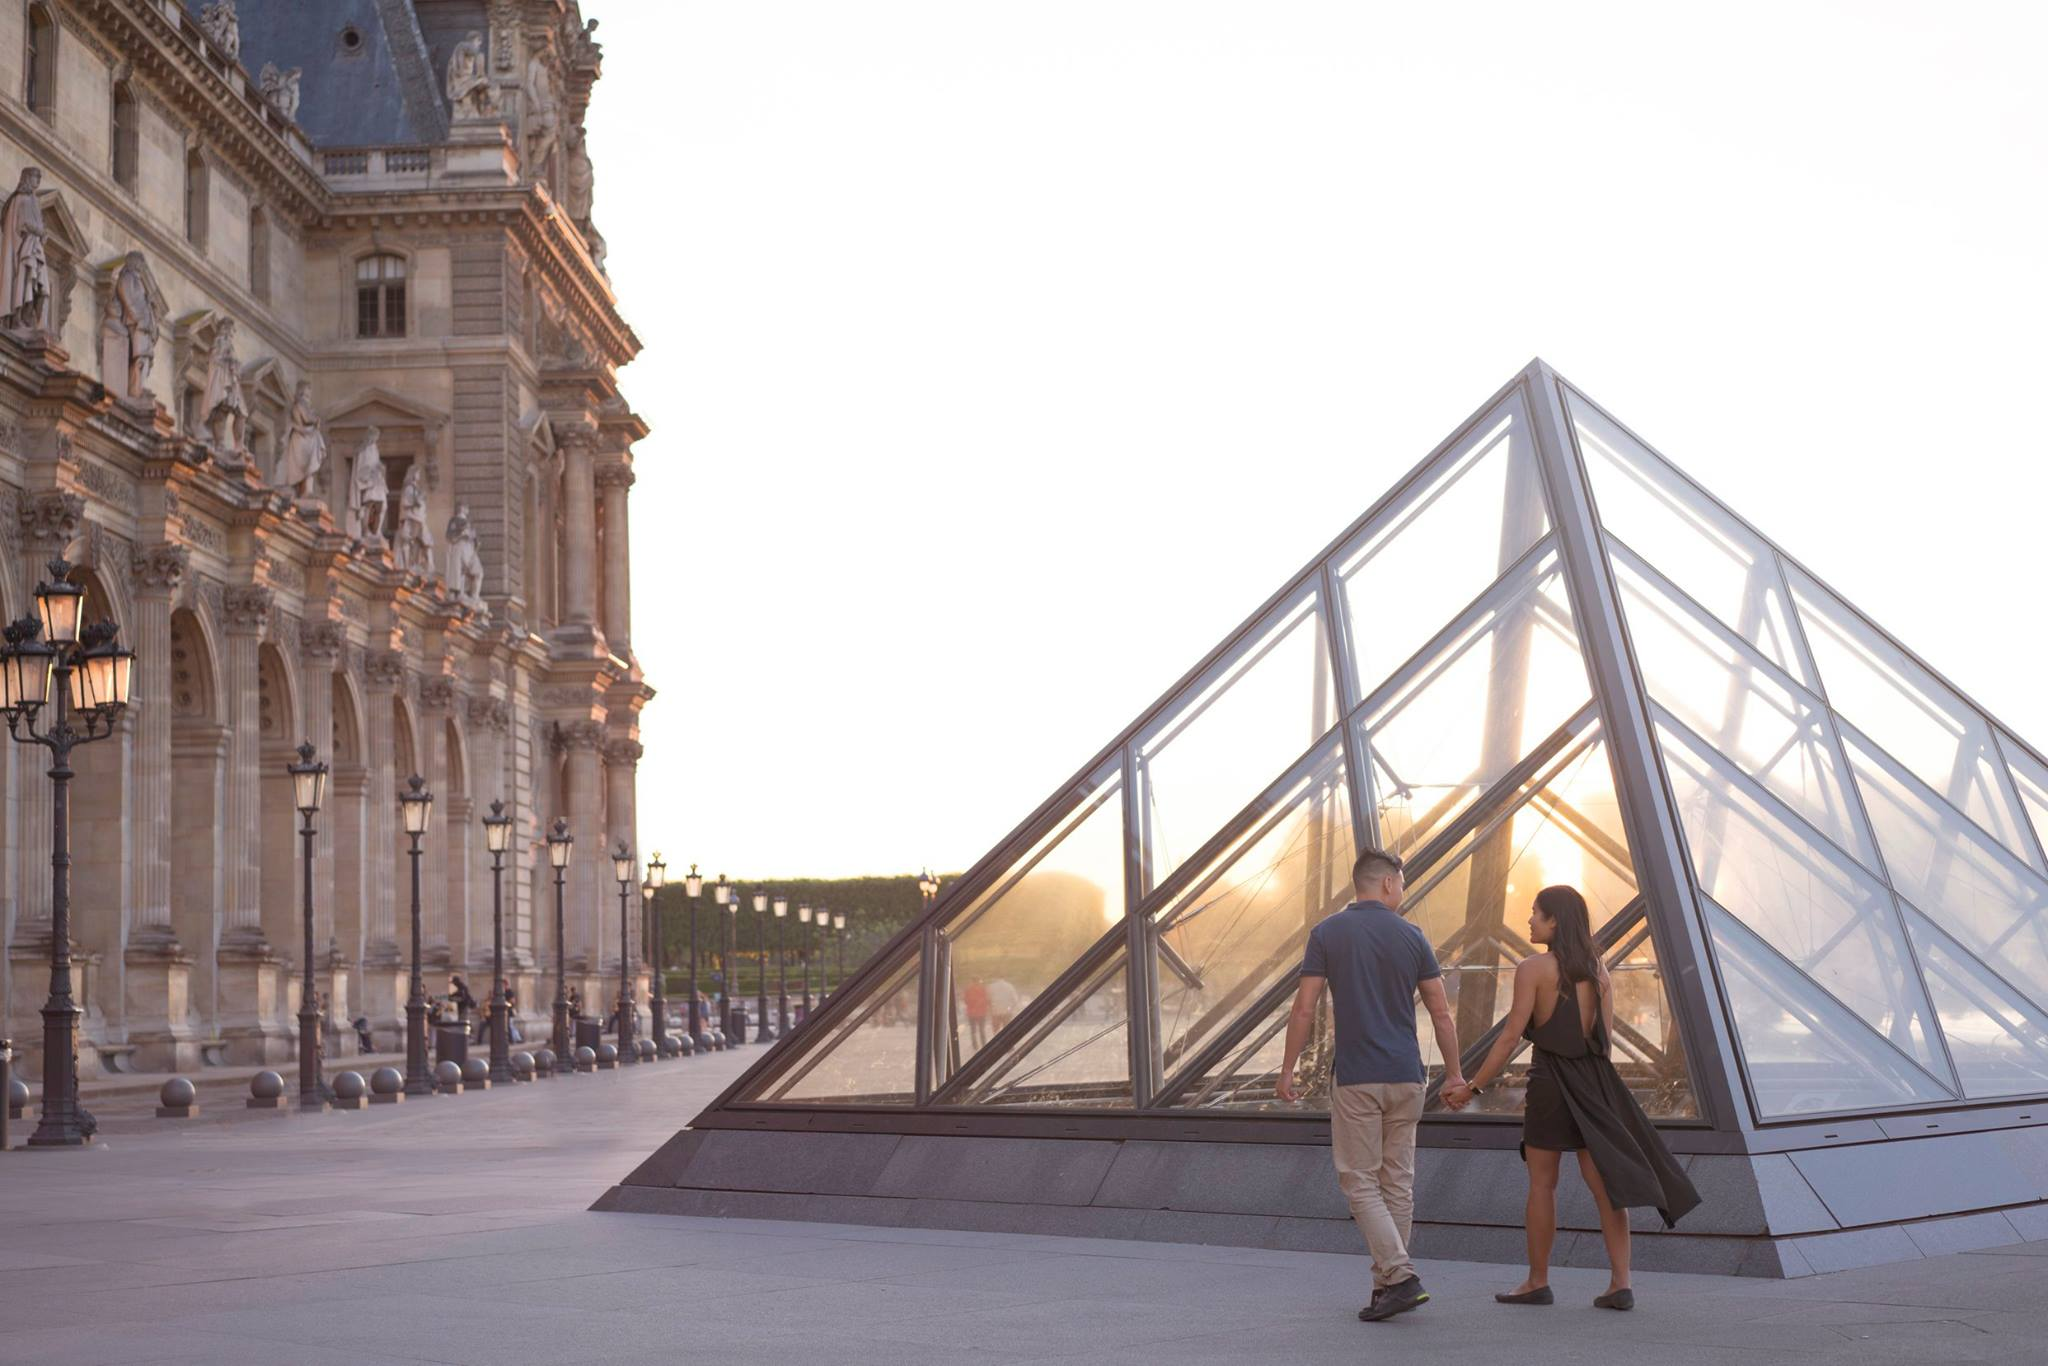 Musee du Louvre Paris things to do